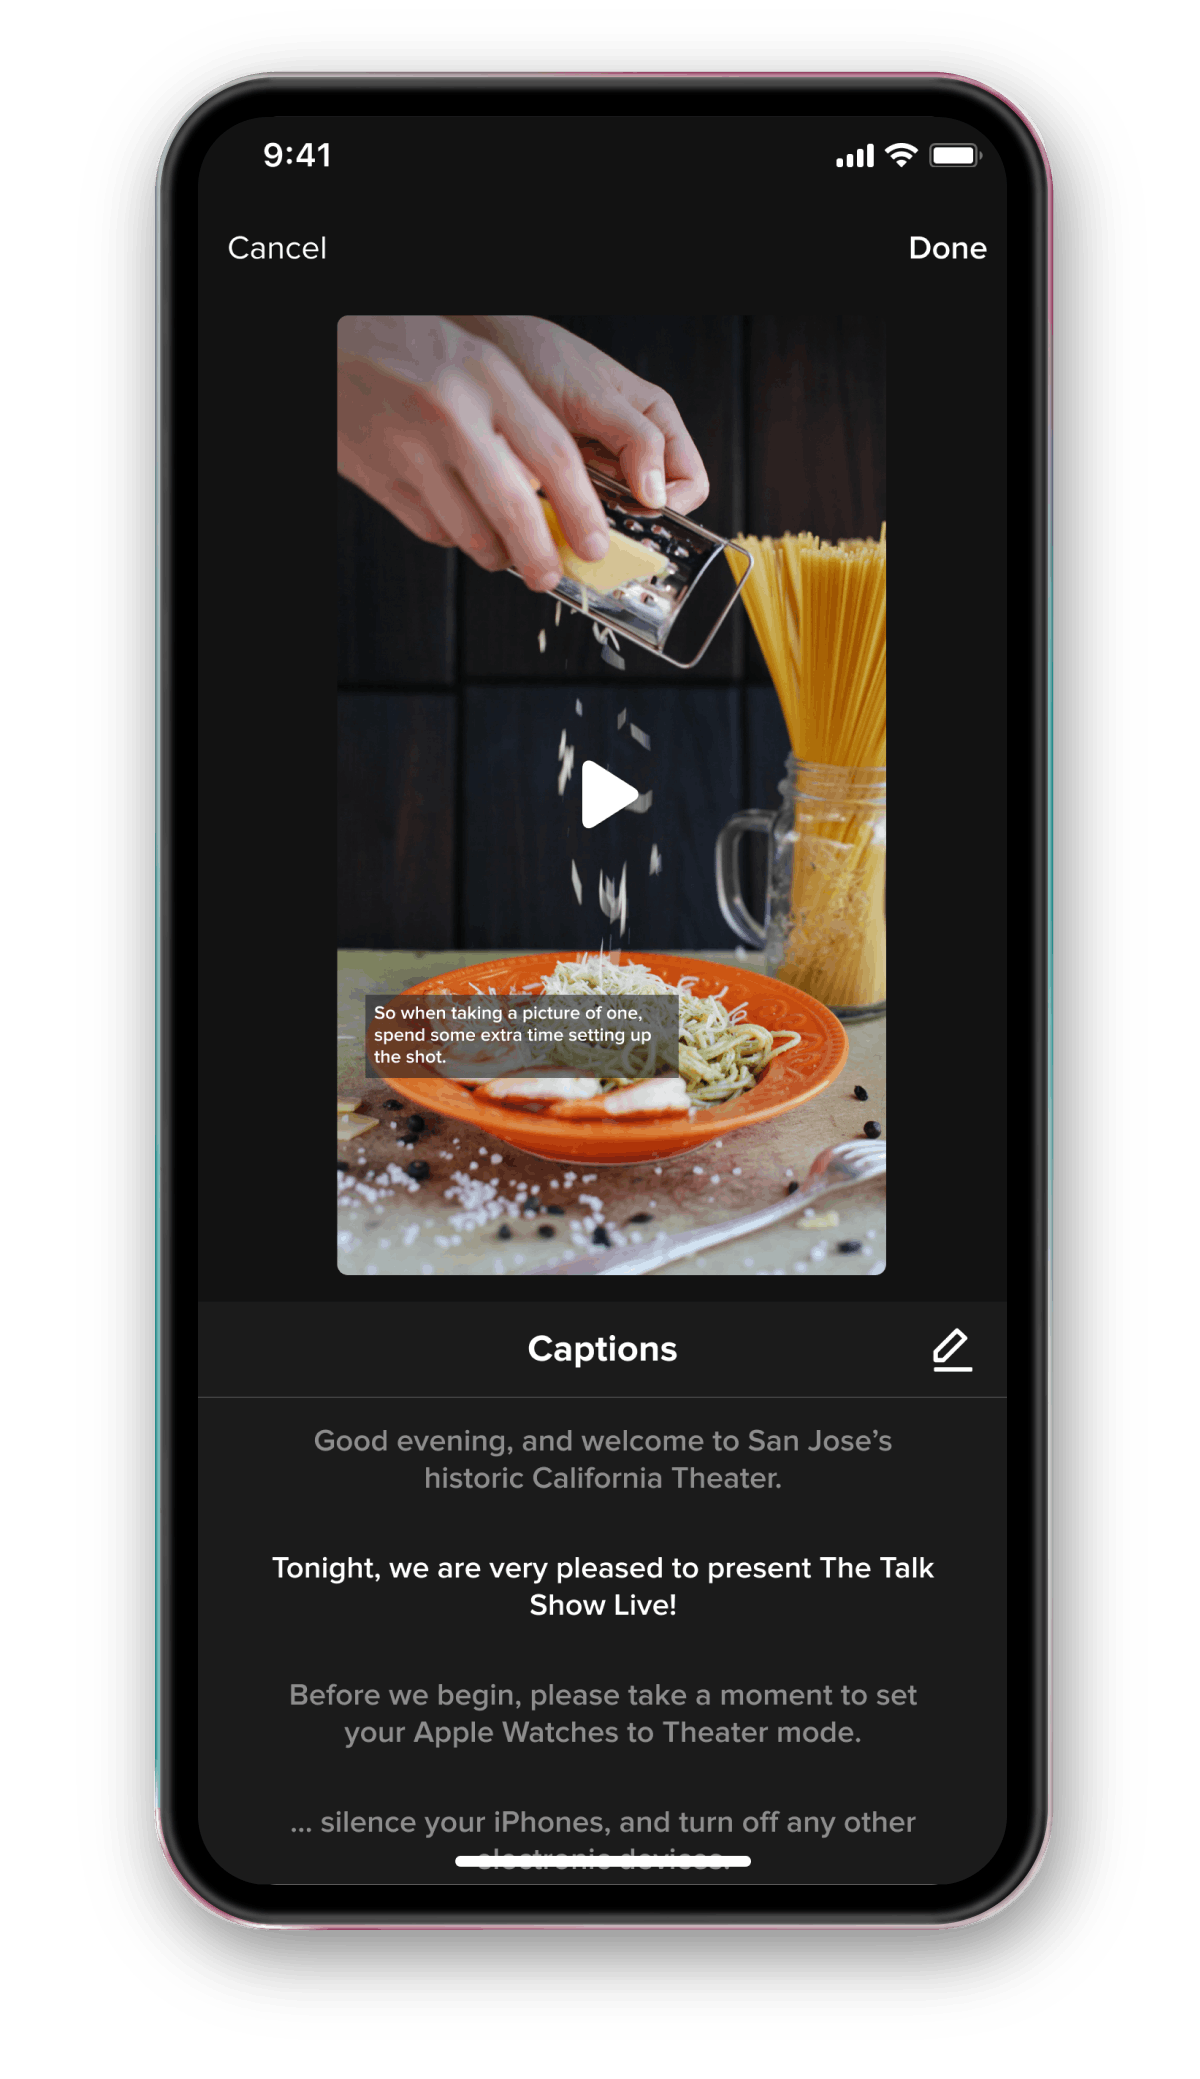 You can add automatic TikTok captions with a few simple steps.